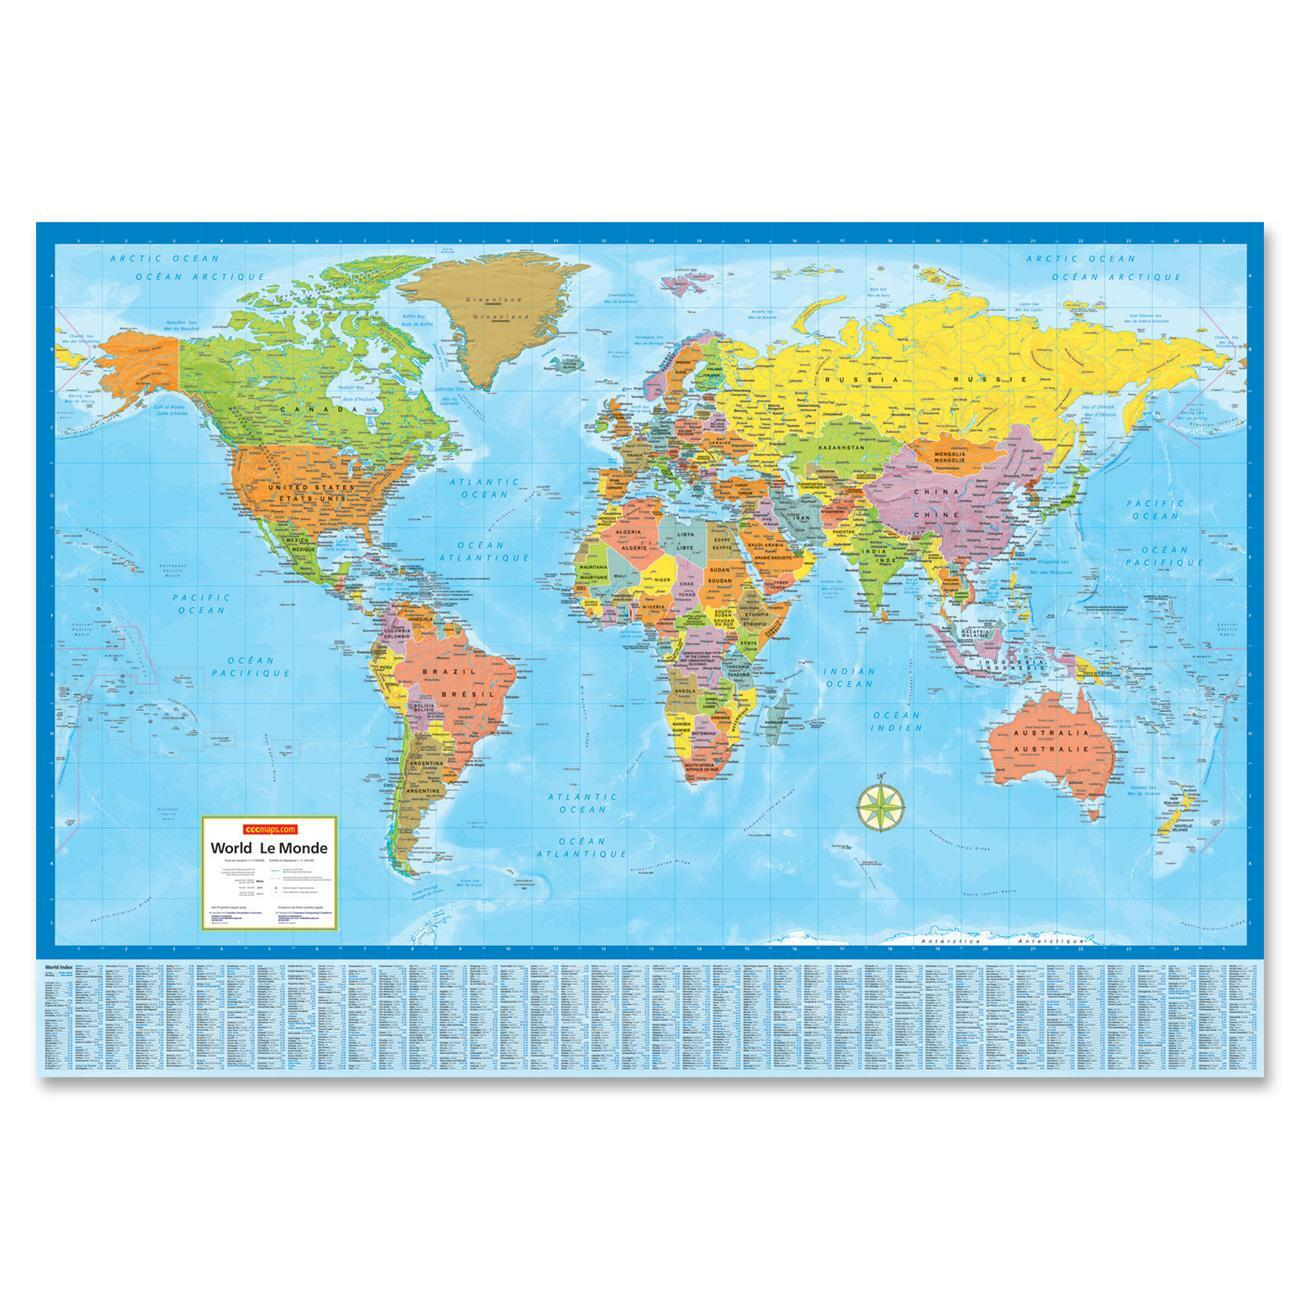 wake up your walls with this colorful contemporary and detailed laminated politicalphysical world wall map with index of country and city names